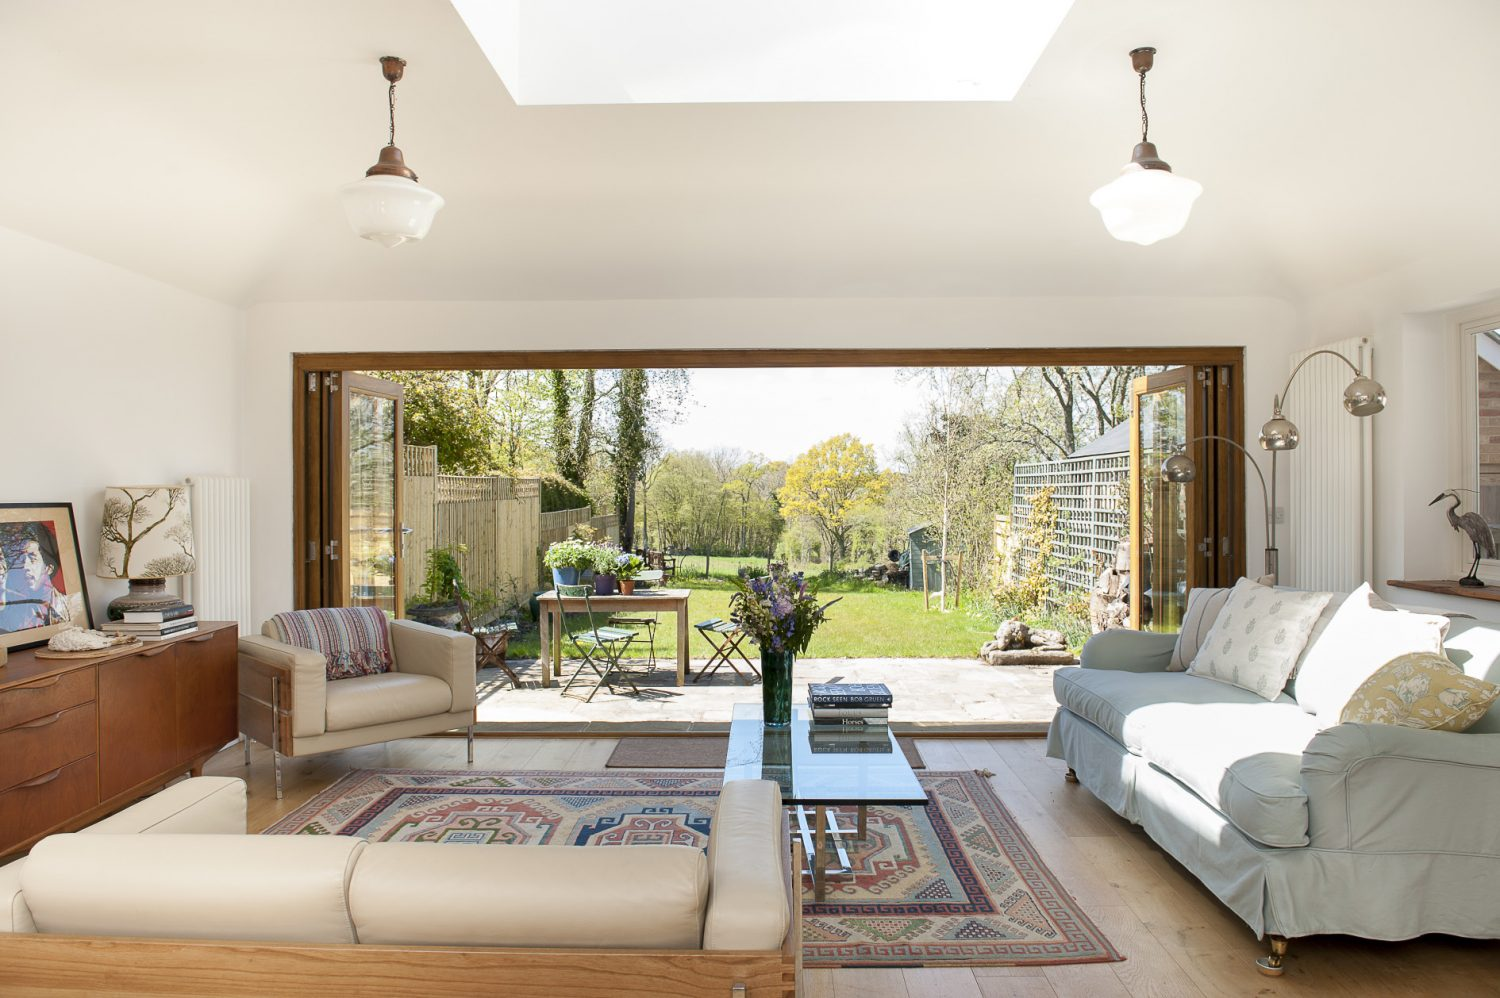 The back of the house has been knocked through to create a huge bright, open-plan kitchen and living area